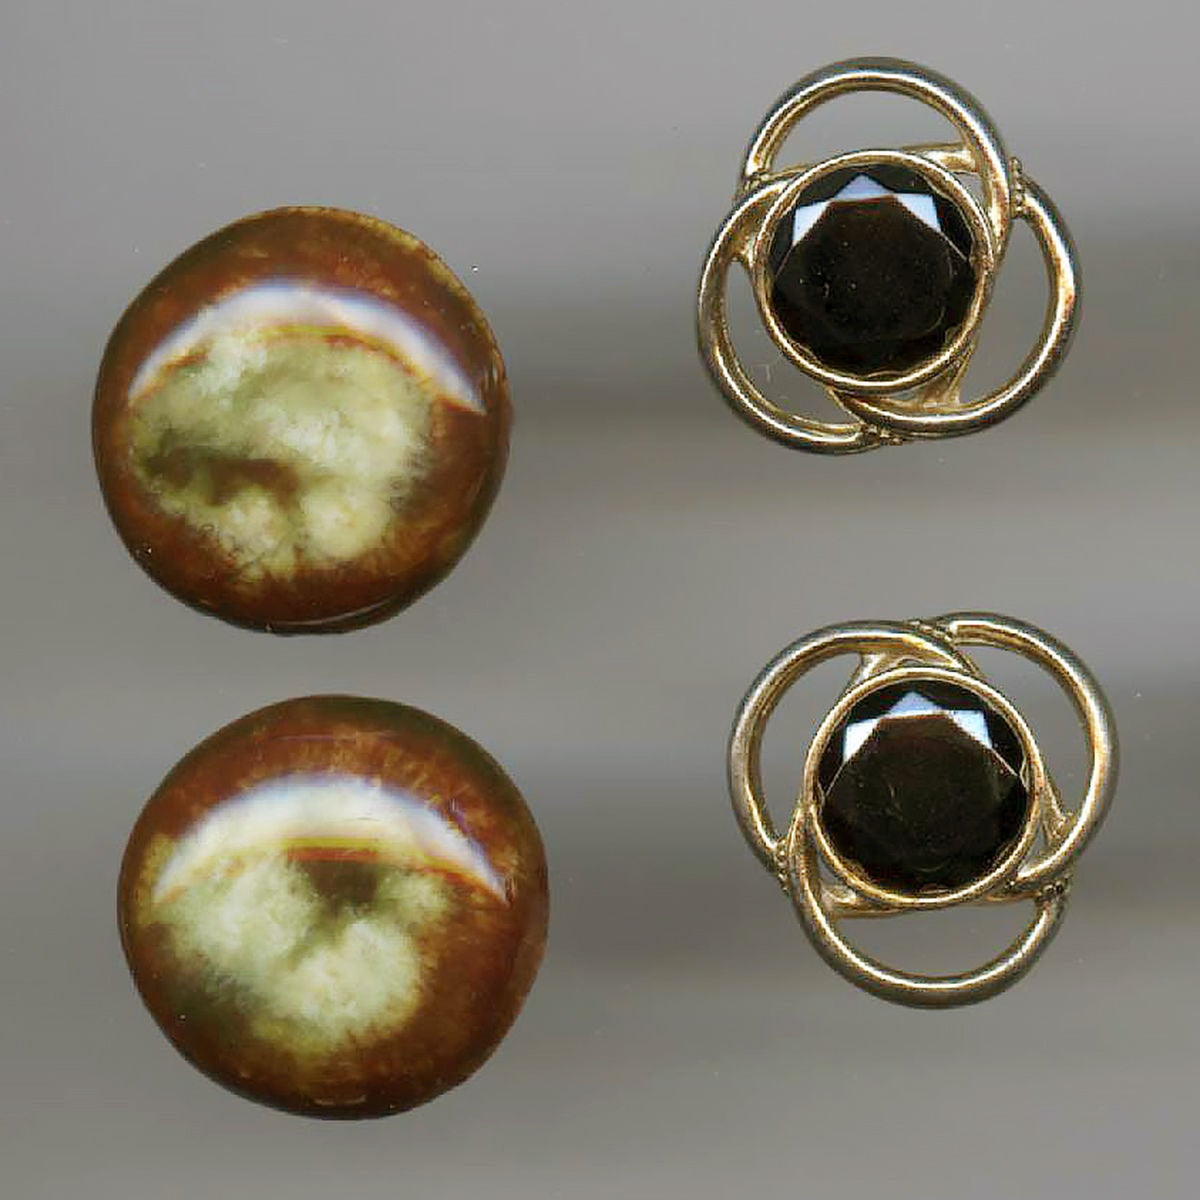 Two Pair of Flashy Groovy Vintage Cuff Links Ceramic and Rhinestone Don Draper Manmen